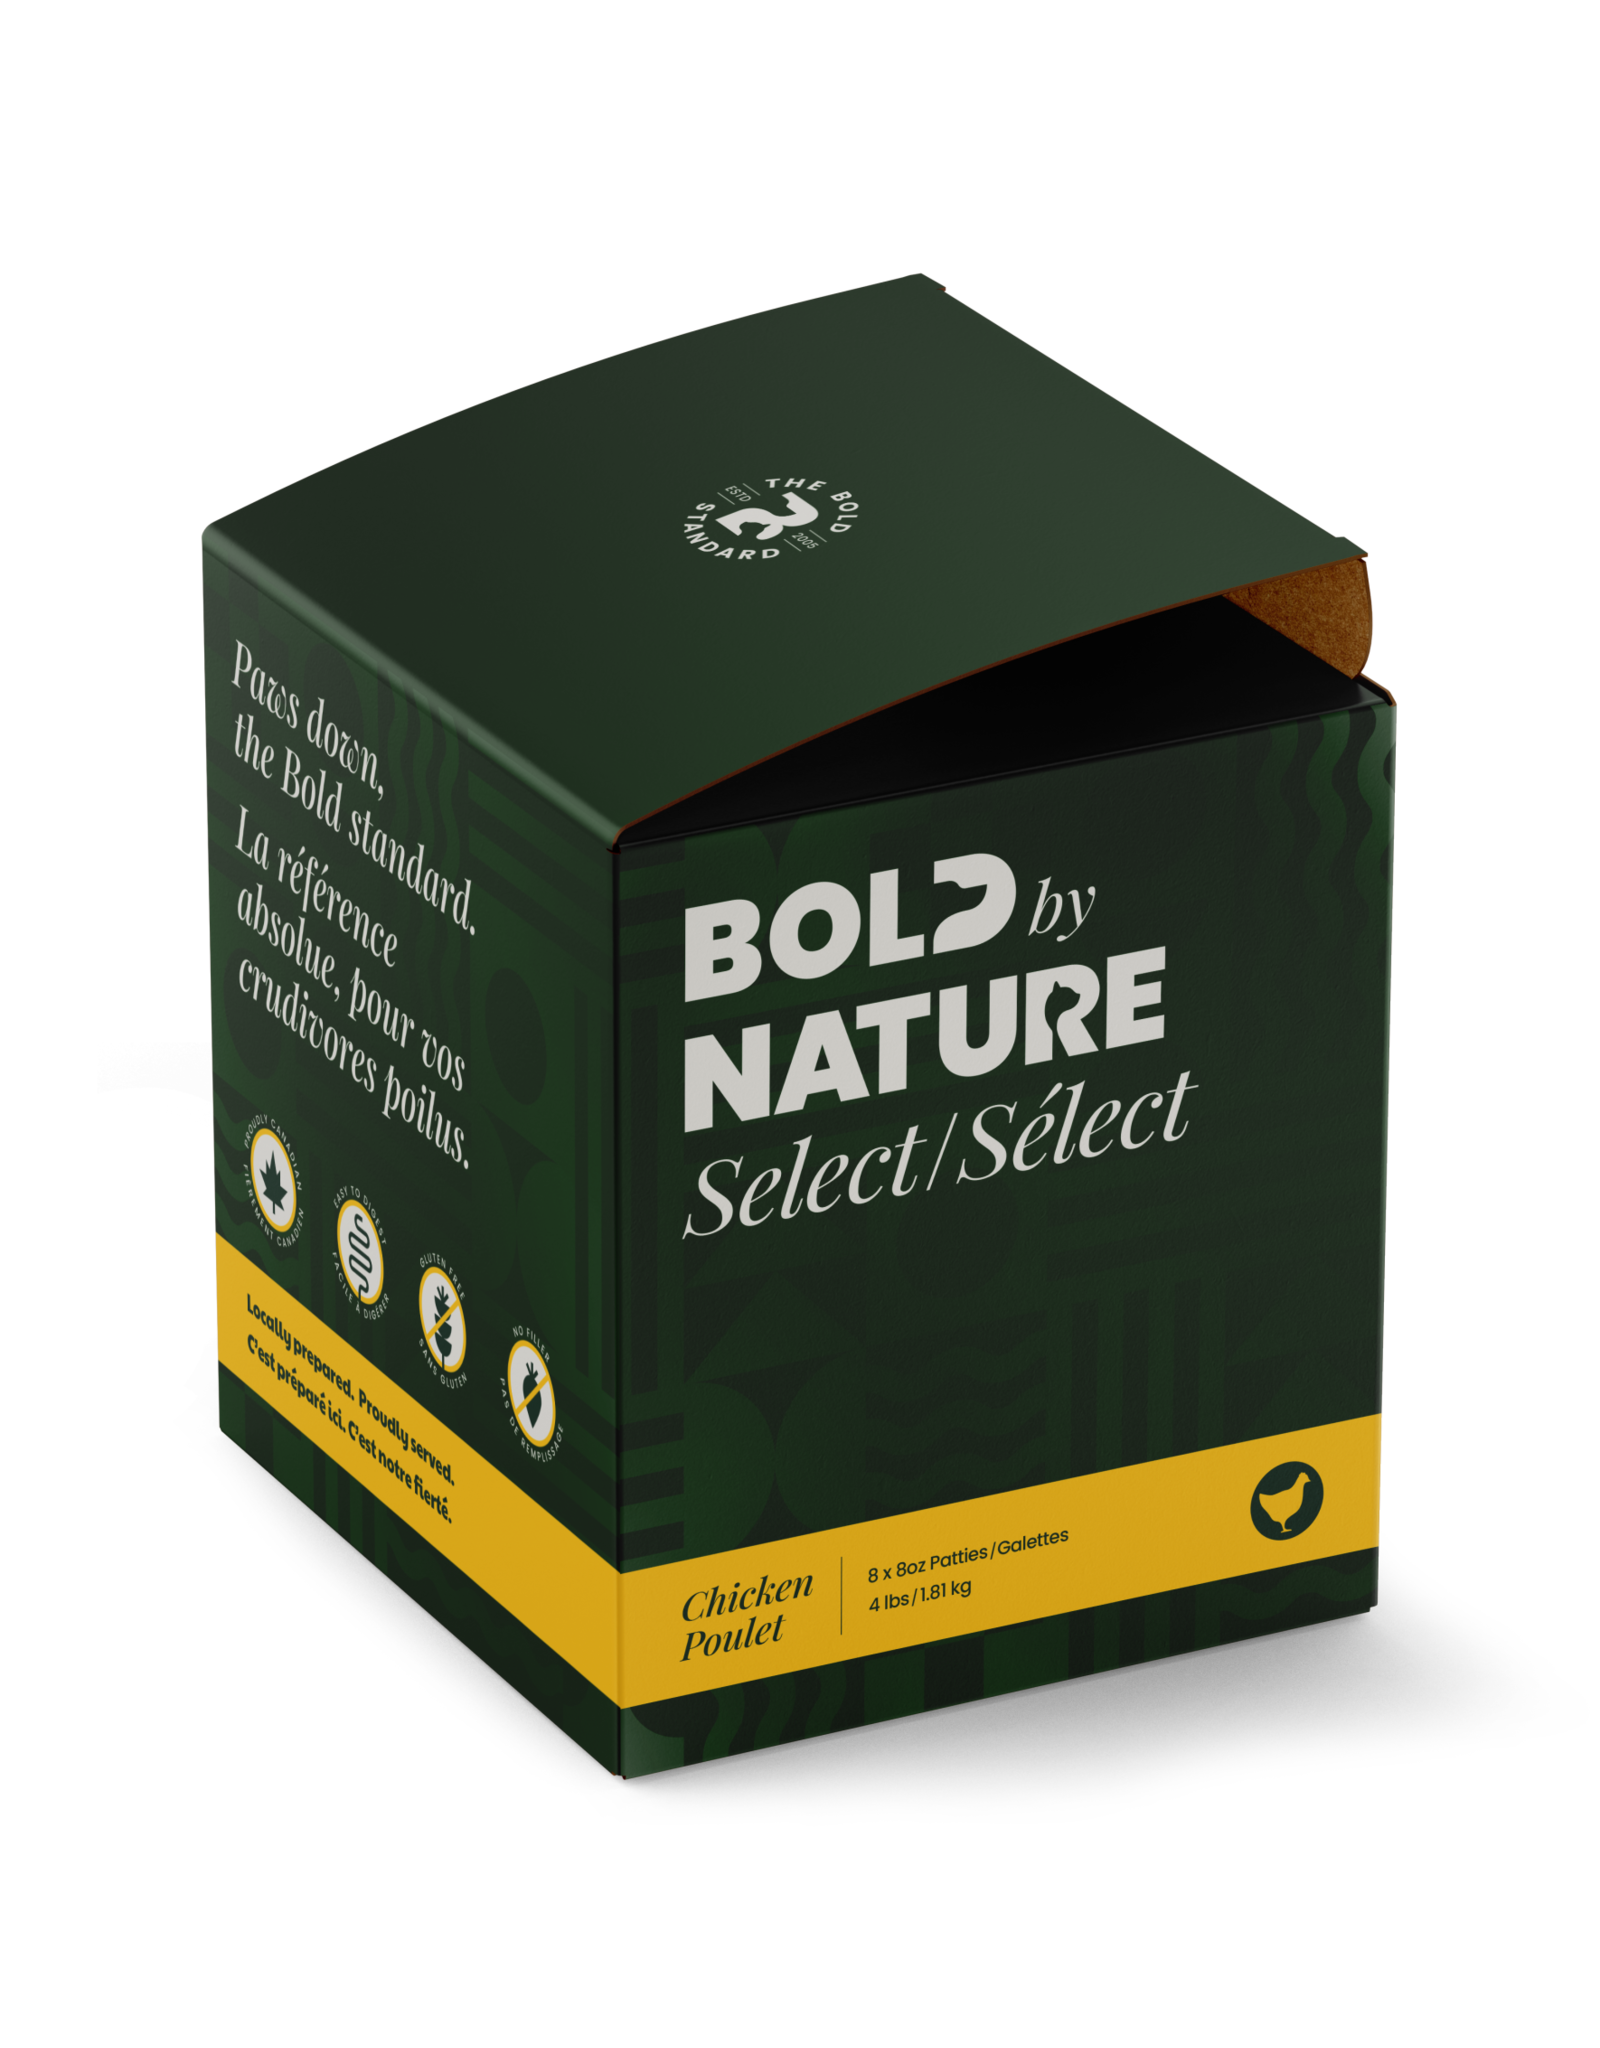 BOLD BY NATURE BOLD CHICKEN PATTIES 4lb